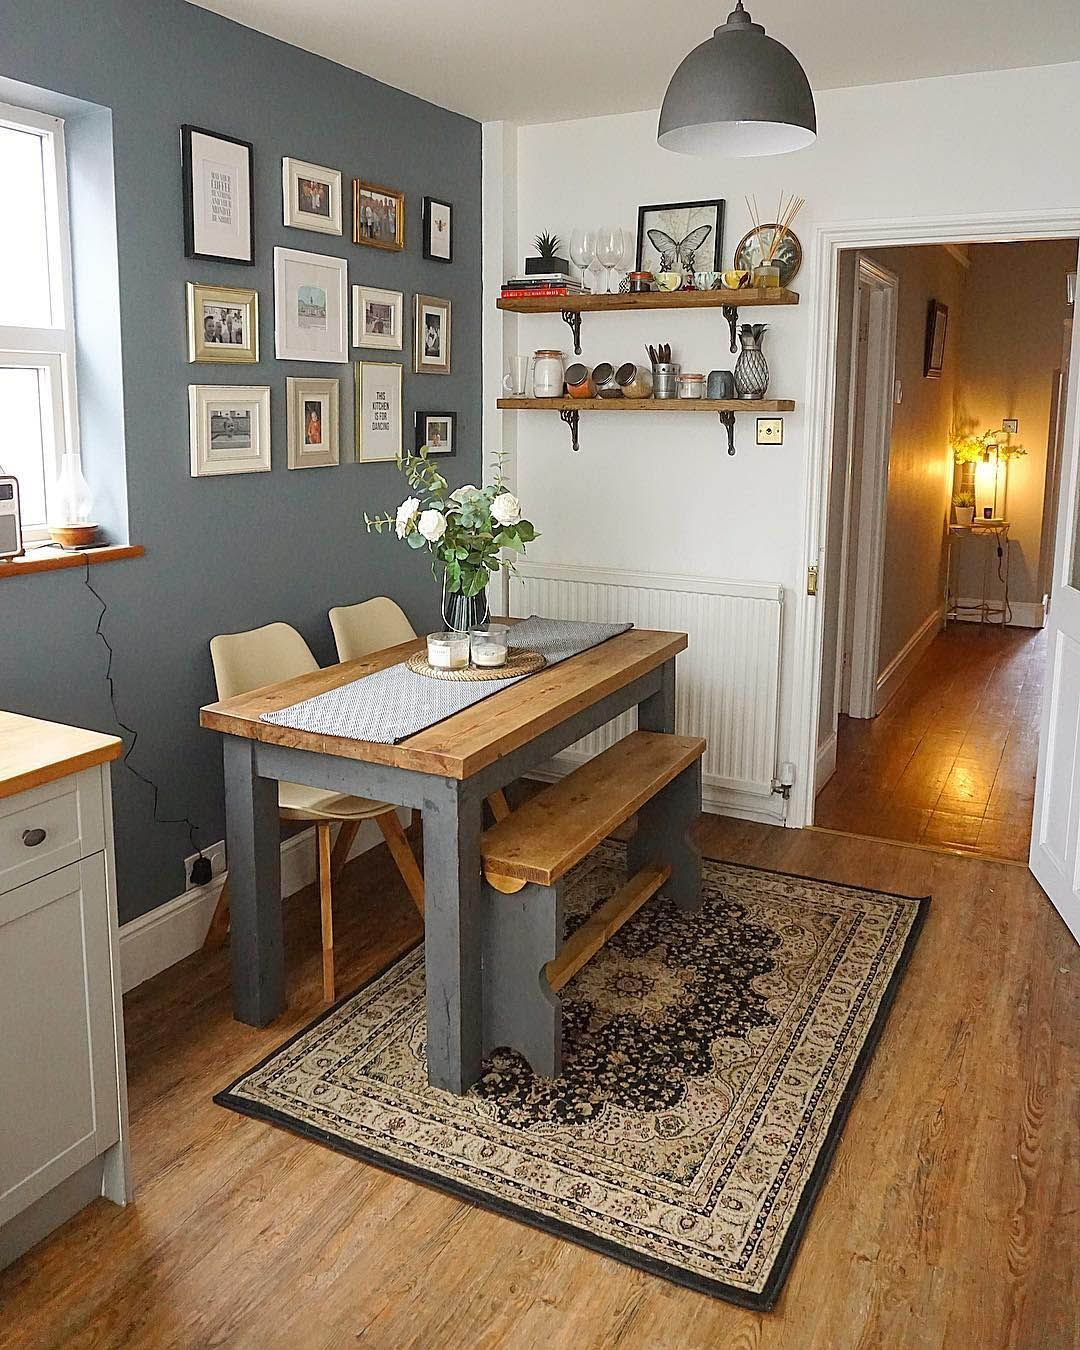 8 Small Kitchen Table Ideas For Your Home Small Apartment